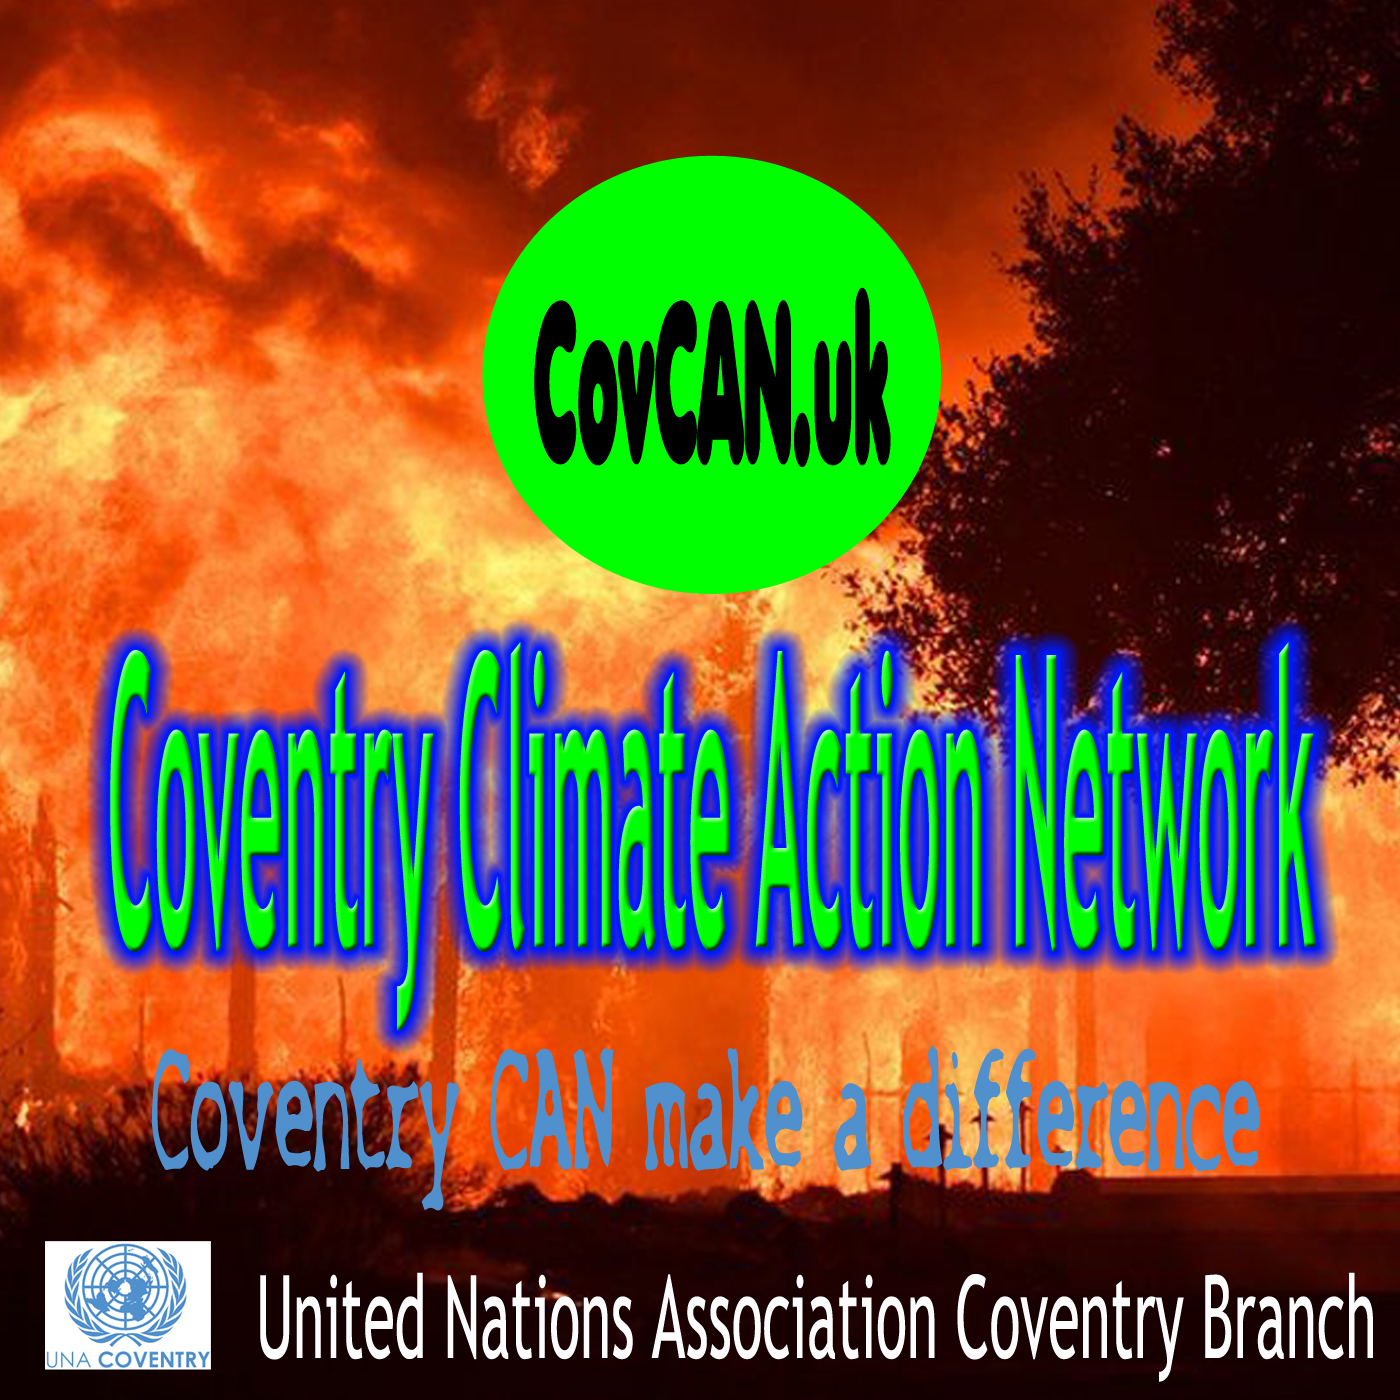 Coventry Climate Action Network